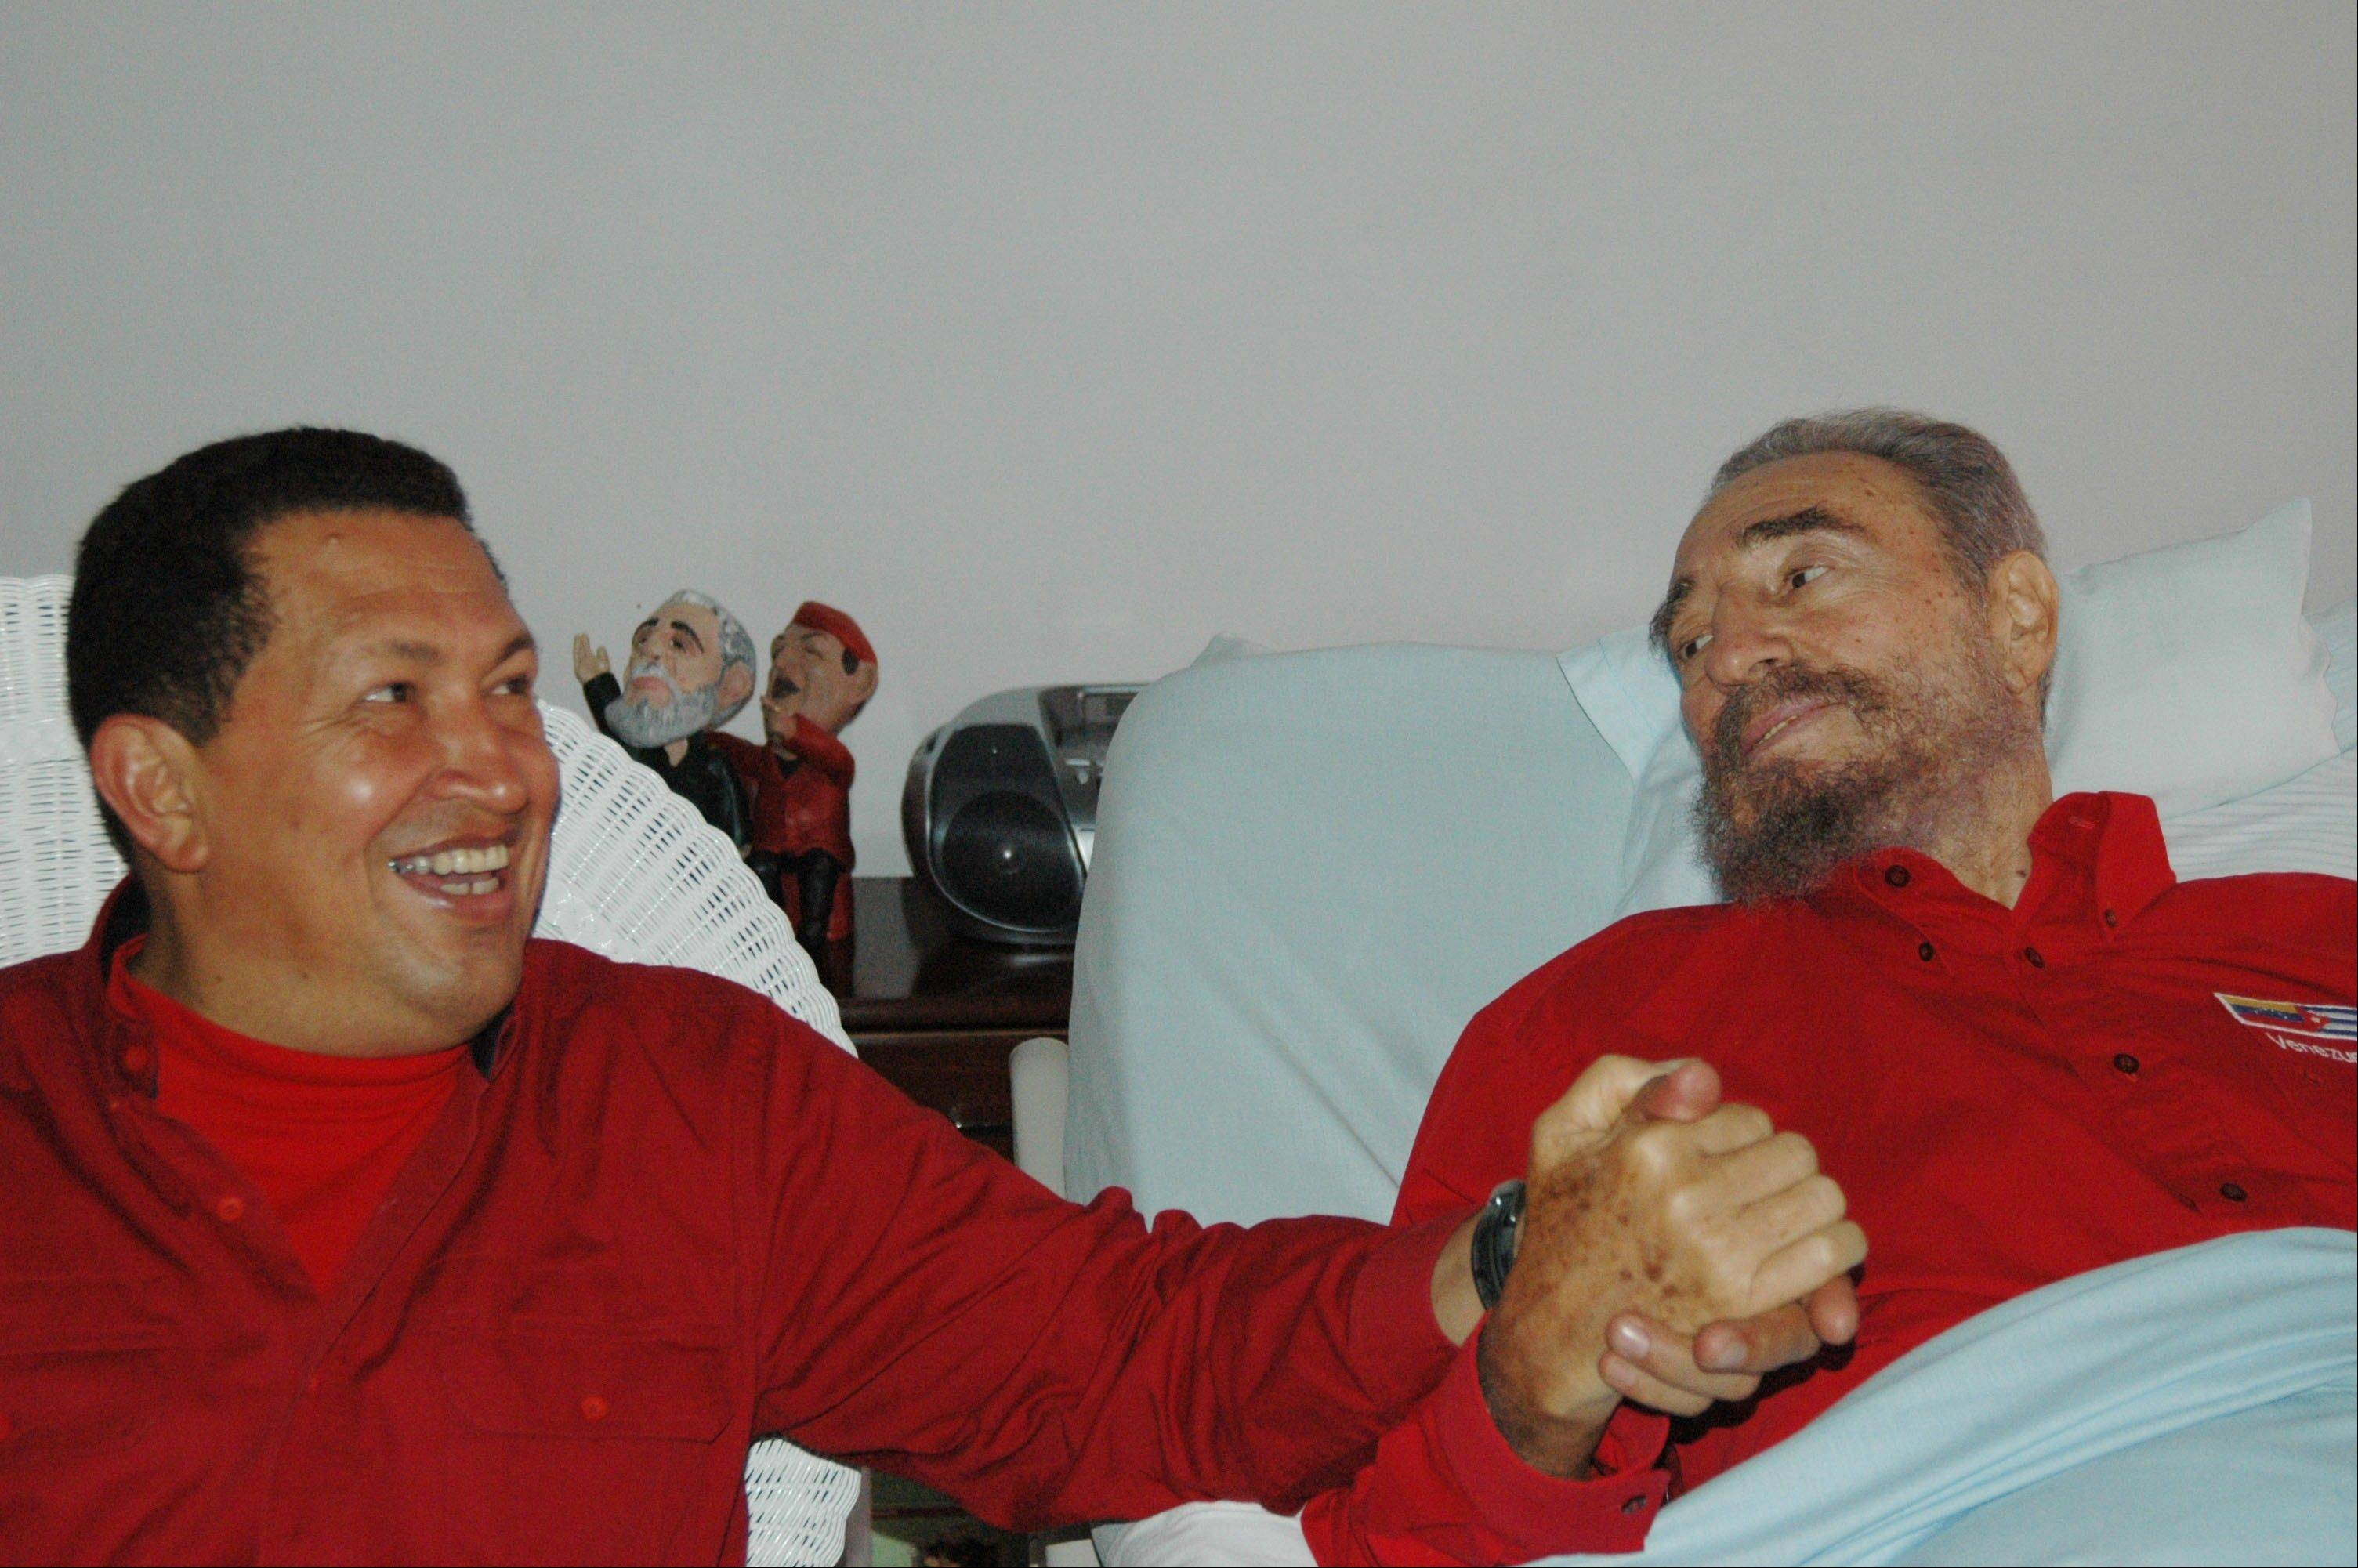 In this Aug. 13, 2006 file photo released by Cuba's Communist daily newspaper Granma, Cuba's leader Fidel Castro, right, and Venezuela's President Hugo Chavez hold hands as Castro recuperates from surgery in Havana, Cuba.